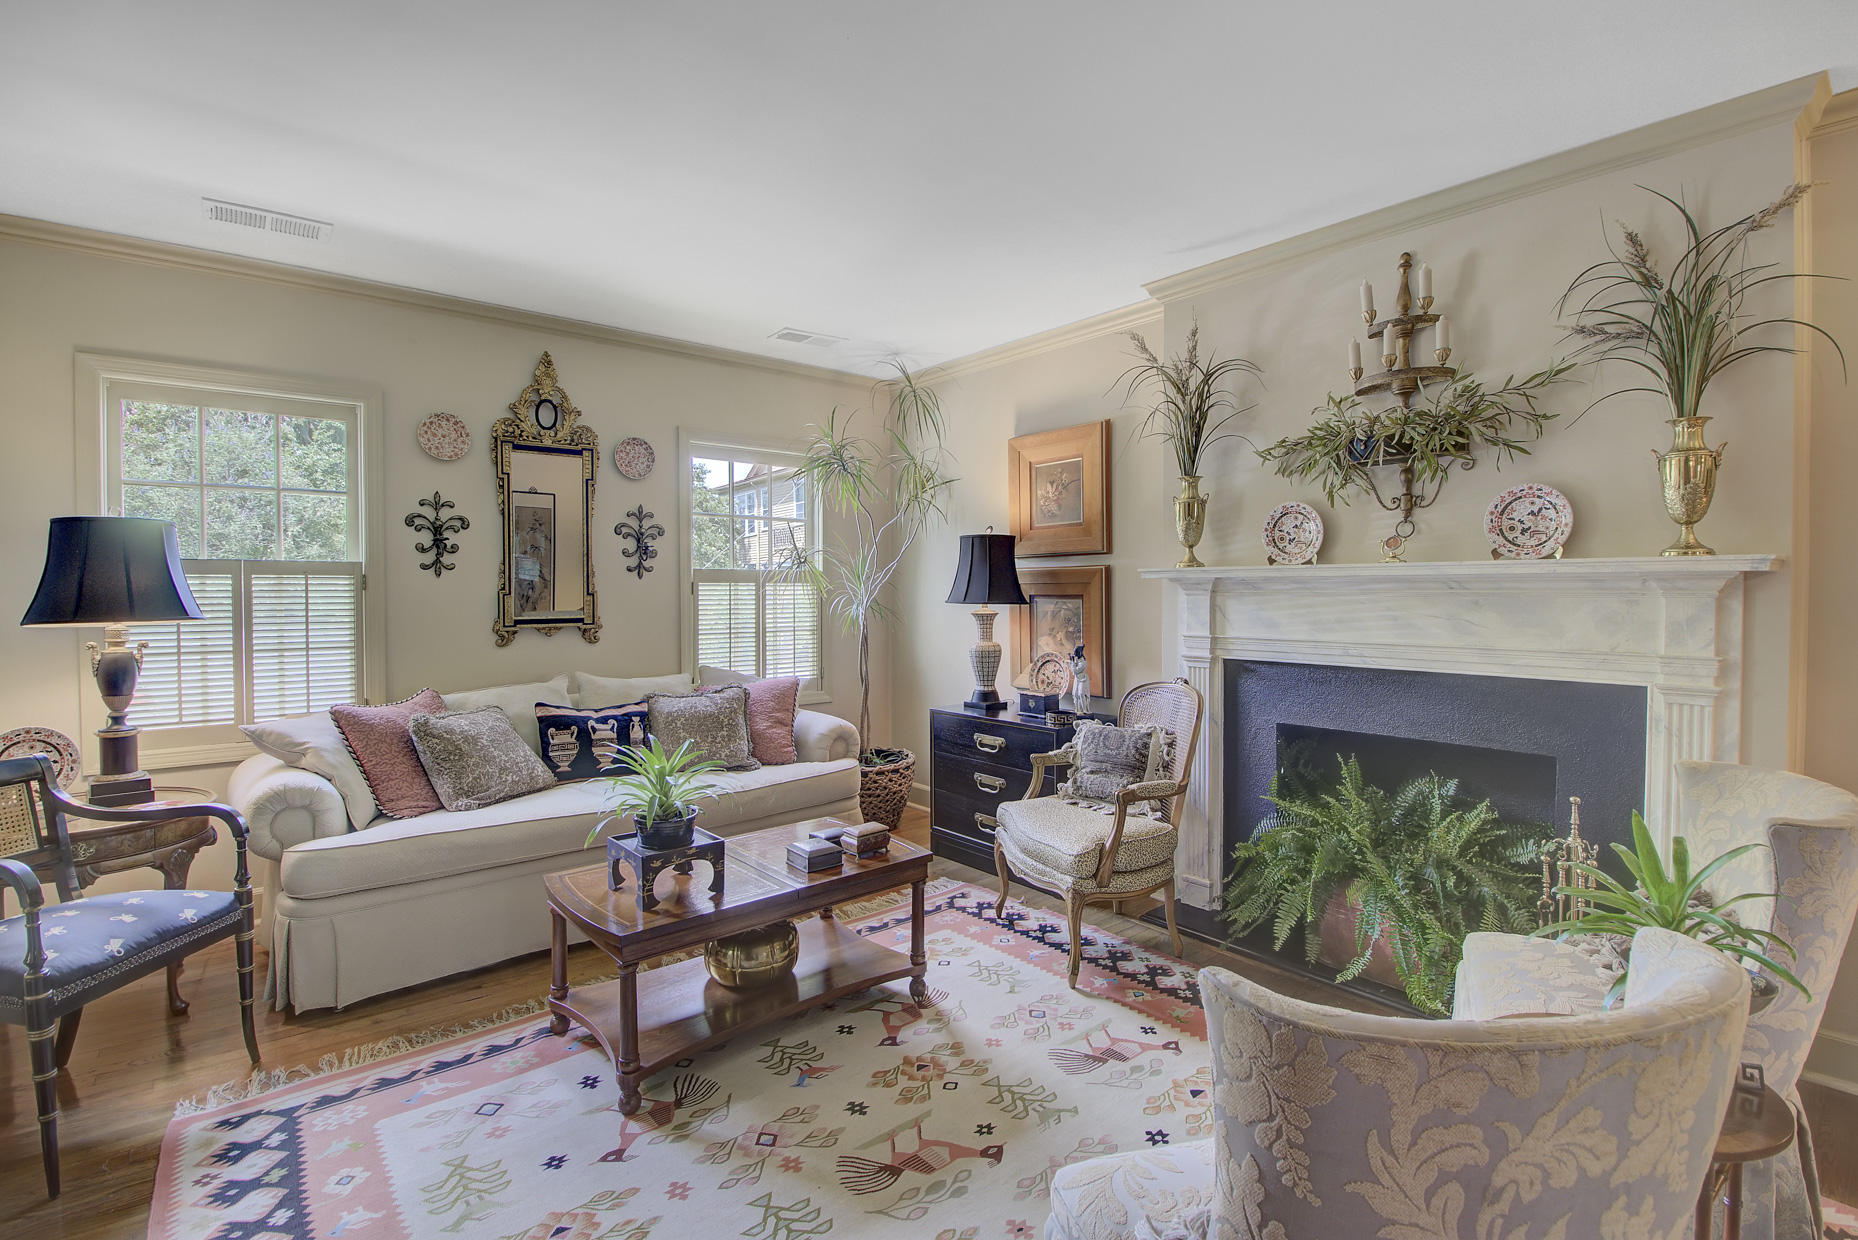 South of Broad Homes For Sale - 2 Colonial, Charleston, SC - 0